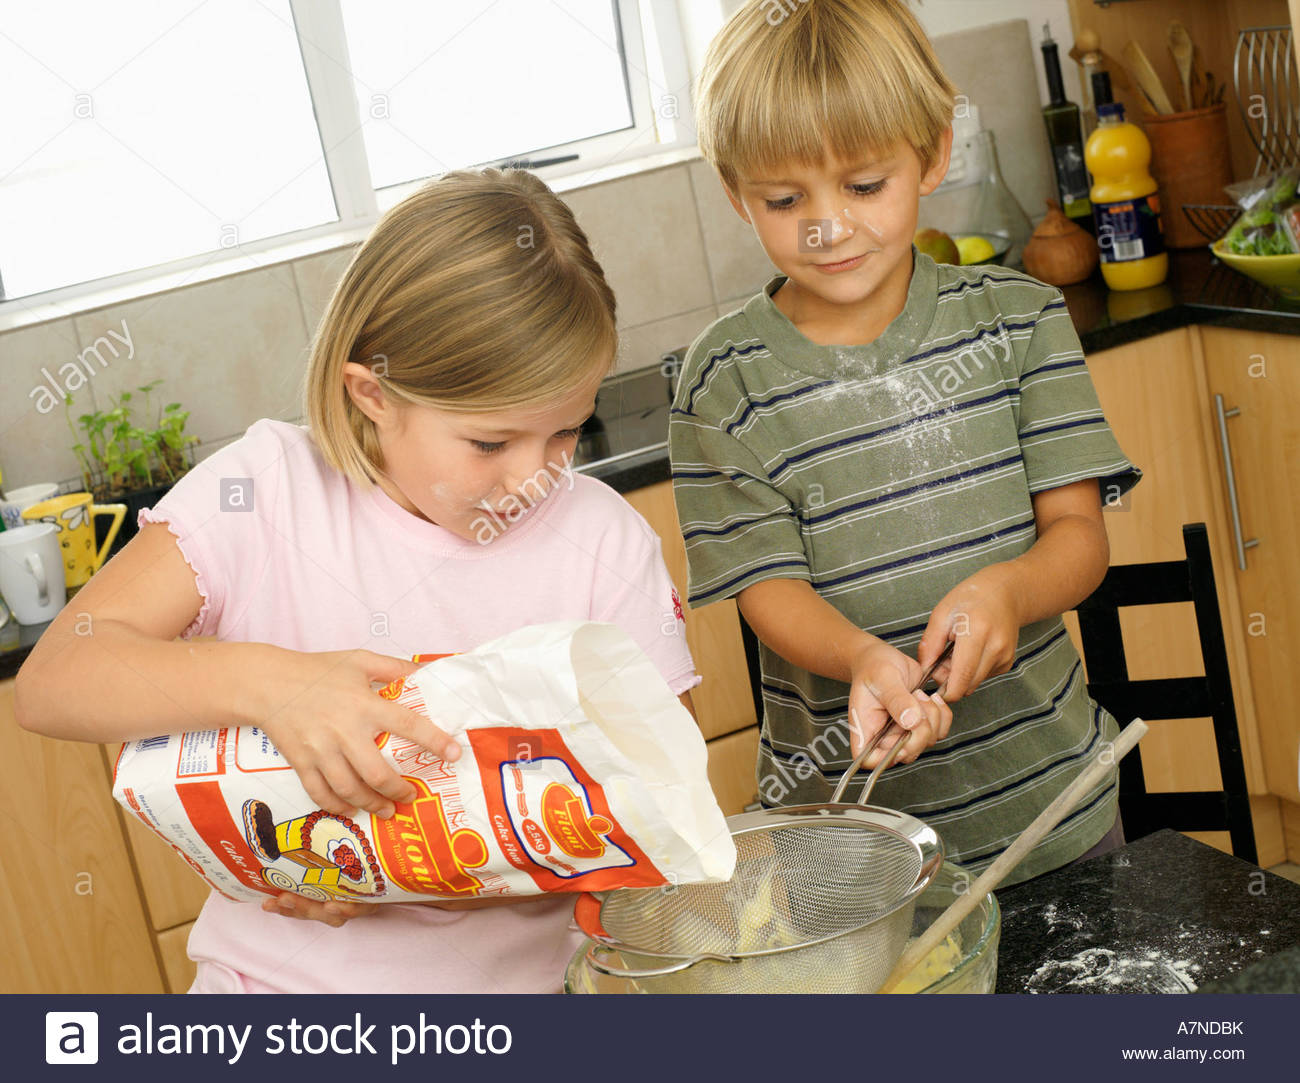 Boy 5 7 and girl 6 8 making cake mix in kitchen girl pouring flour into glass bowl tilt - Stock Image